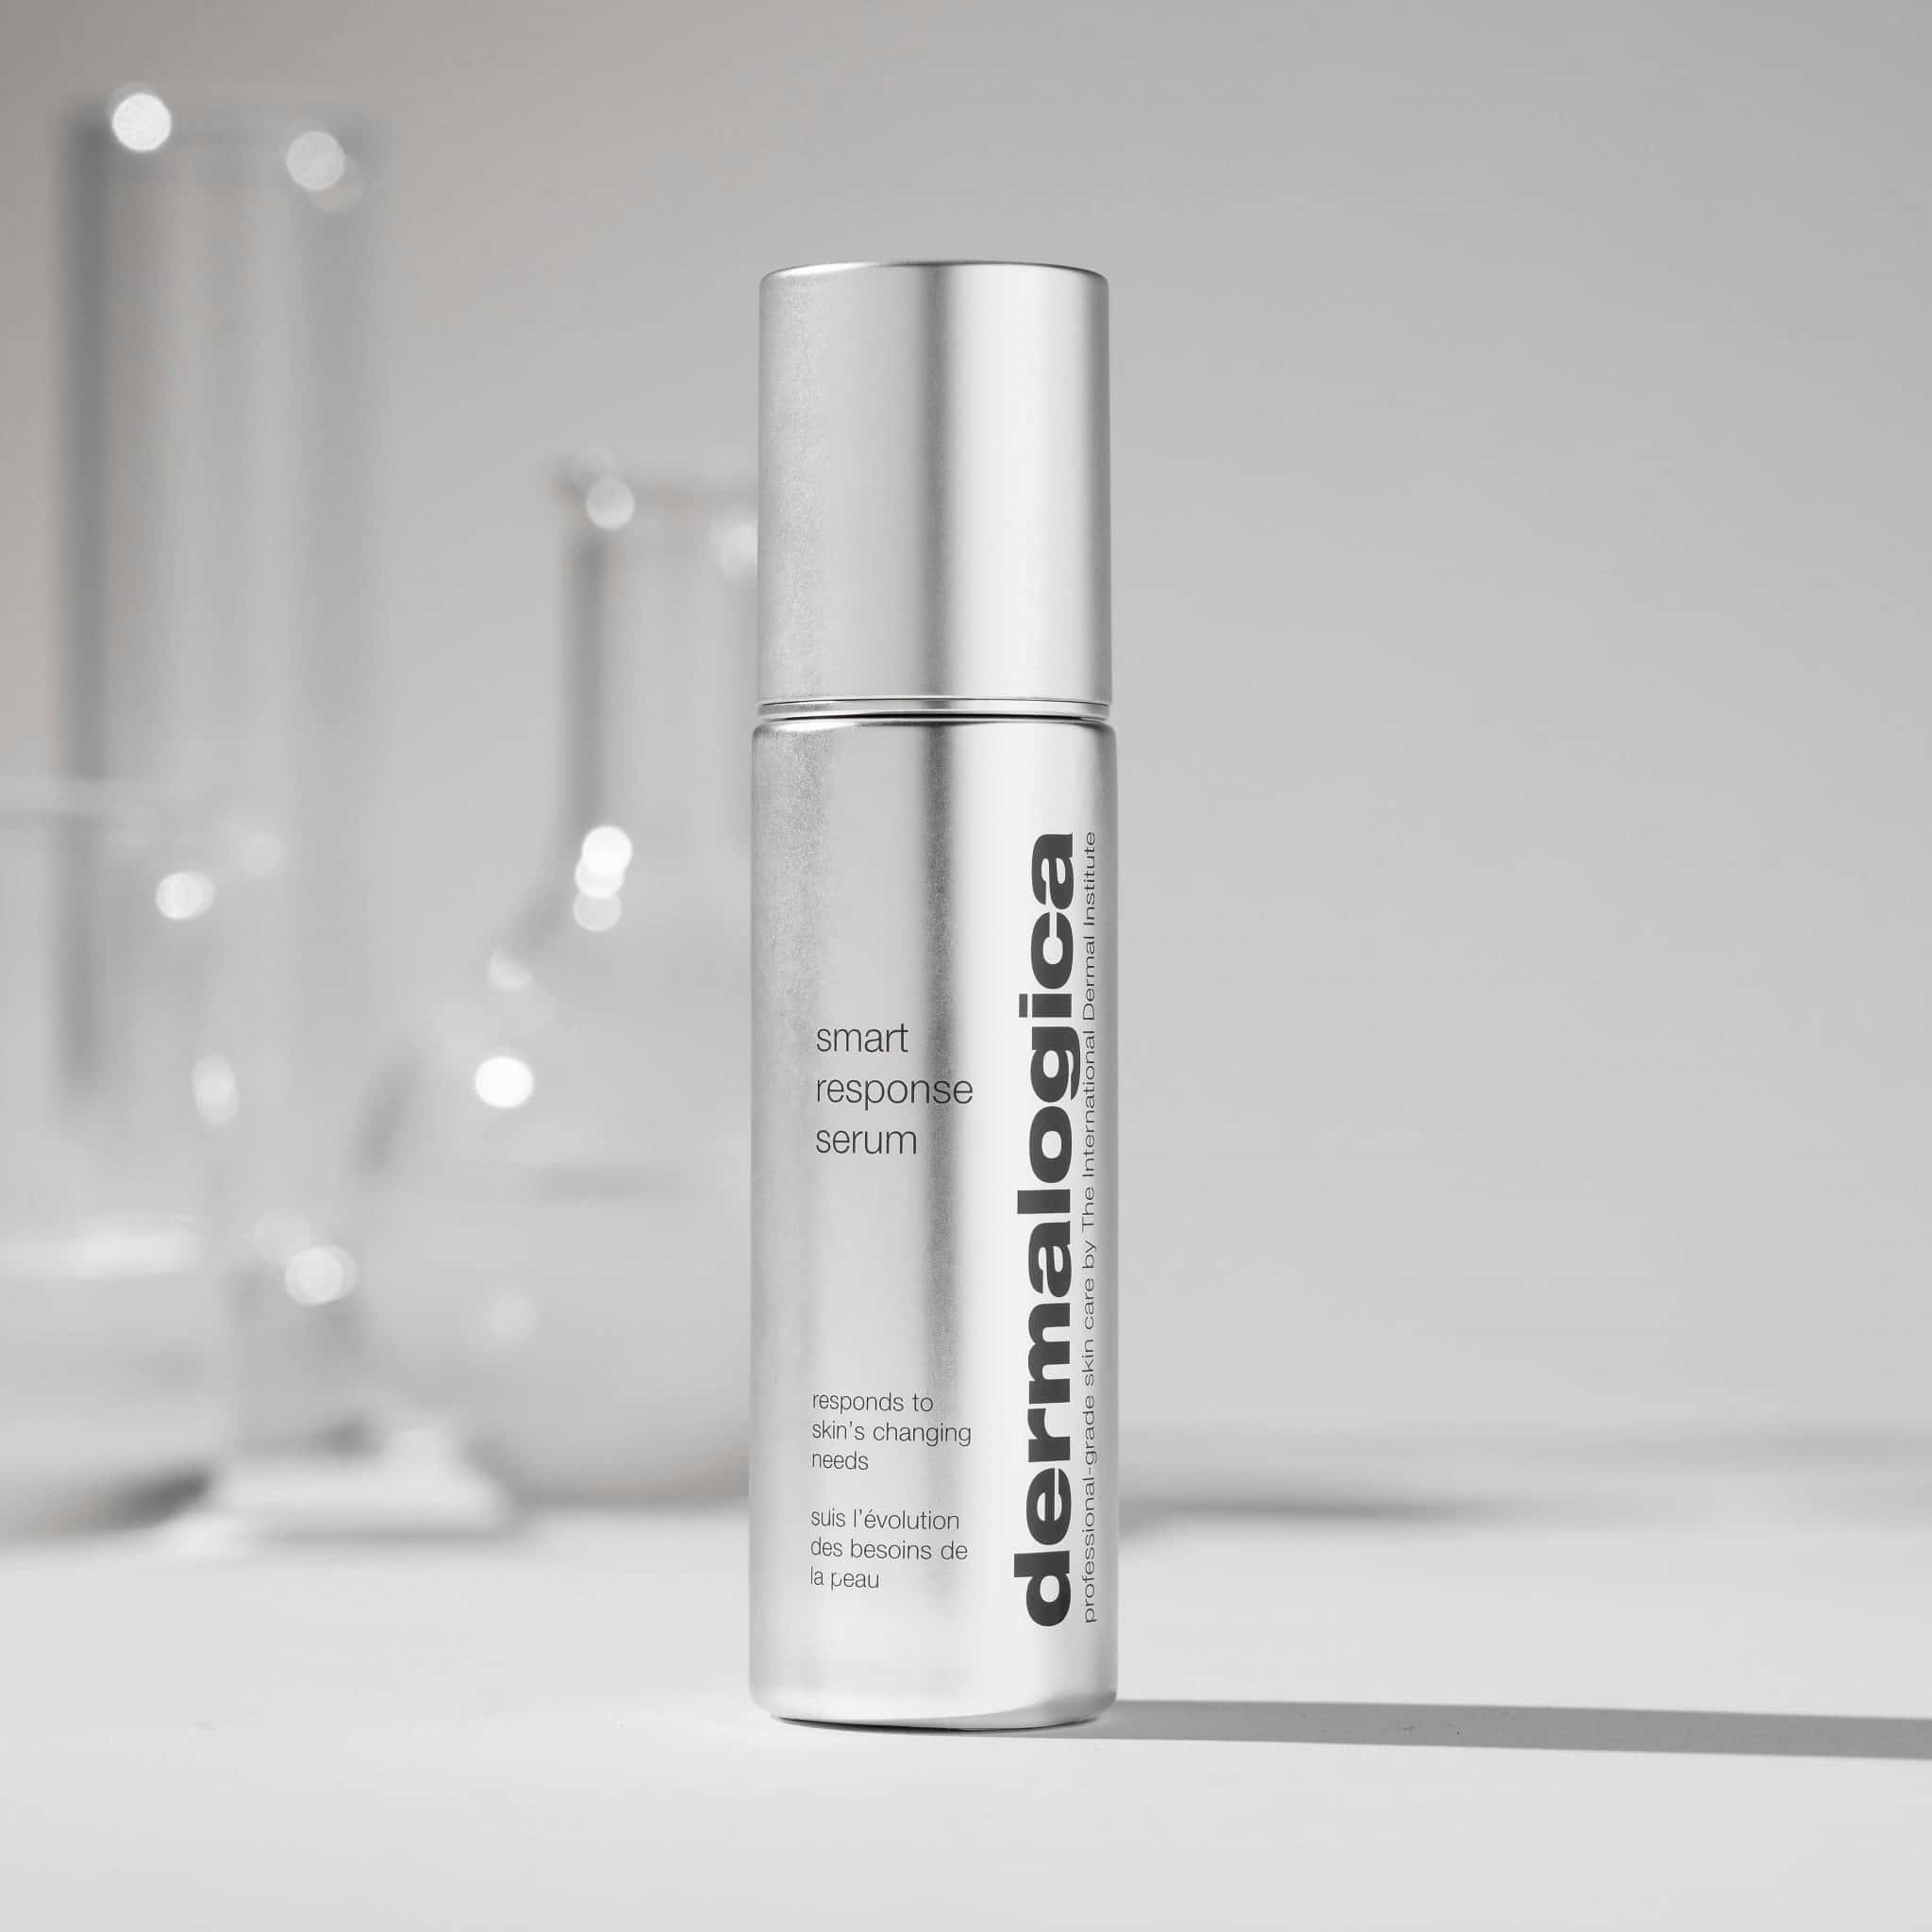 Straight Product with Lab Glasses Behind 1x1 Smart Response Serum scaled